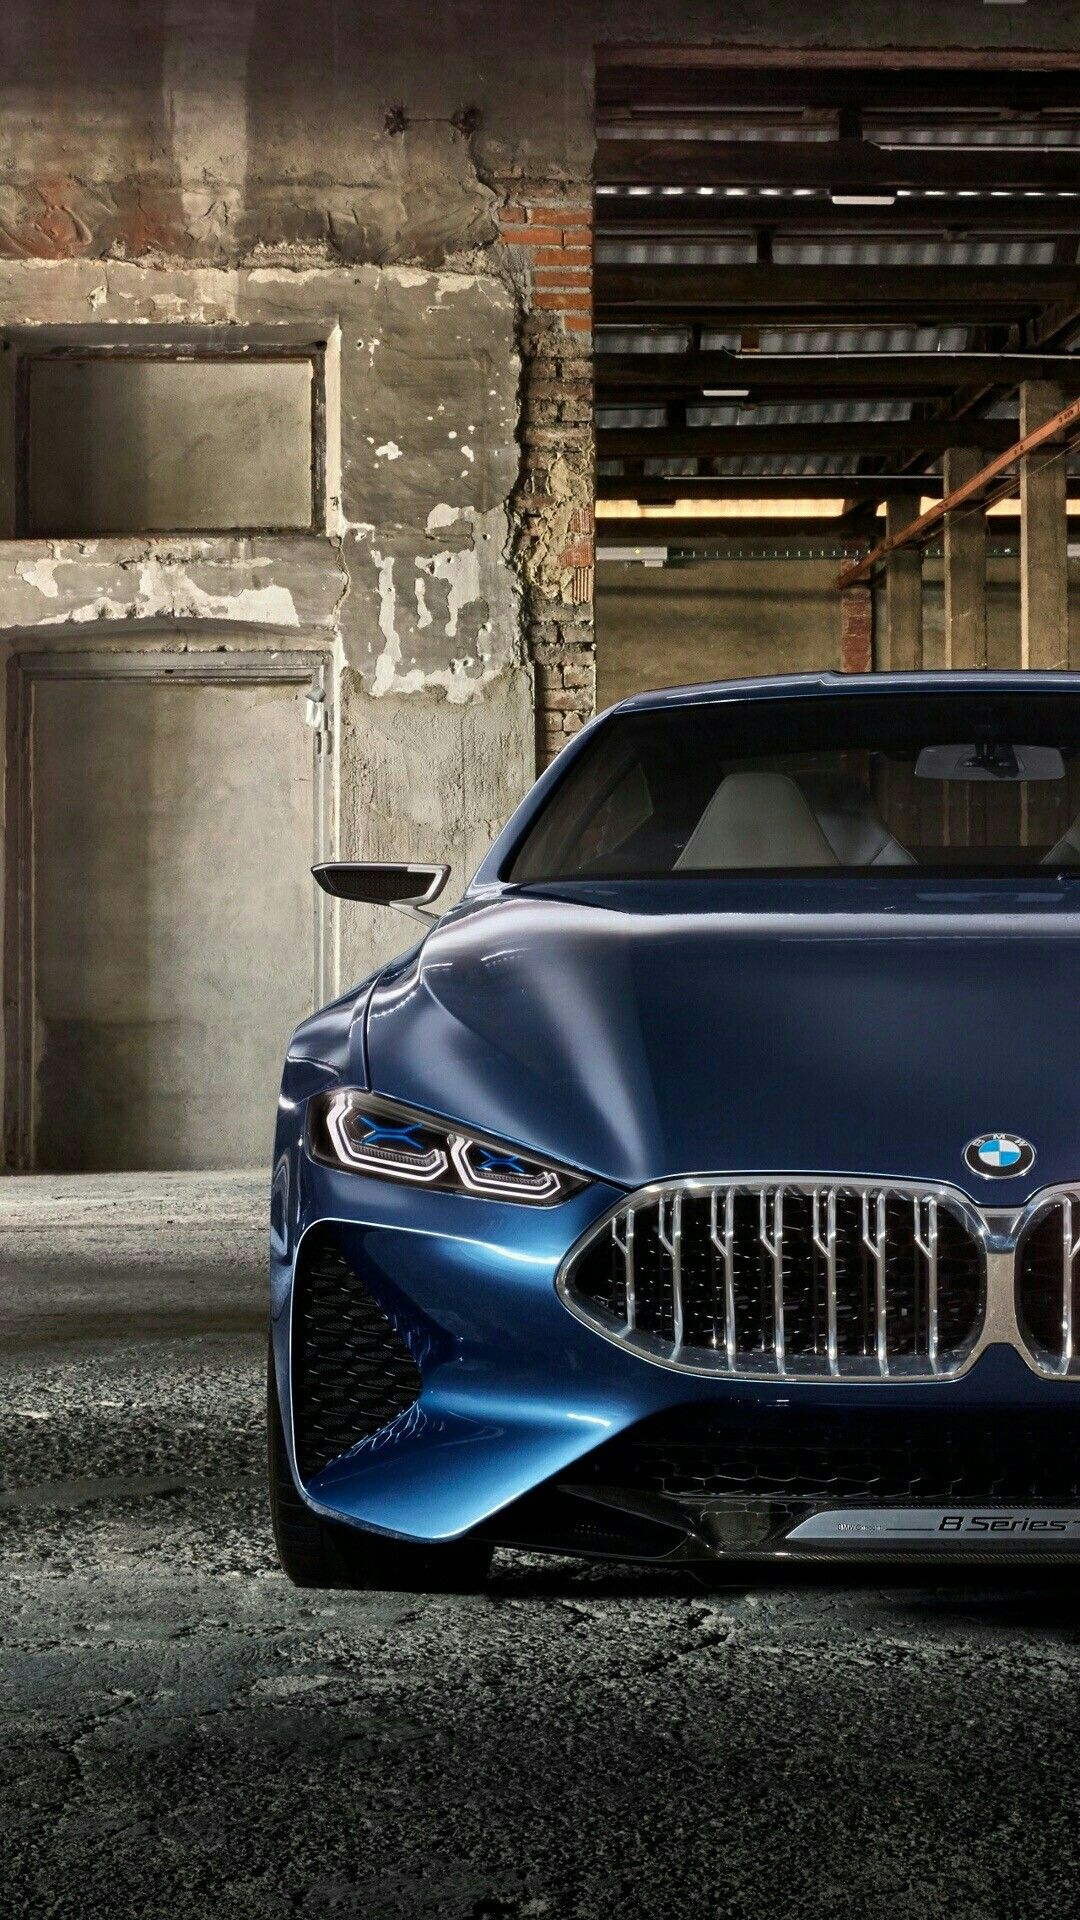 Car wallpapers image by ᗅℳᗅᗅℕ ℛⅈℤᏉⅈ on Cars Bmw